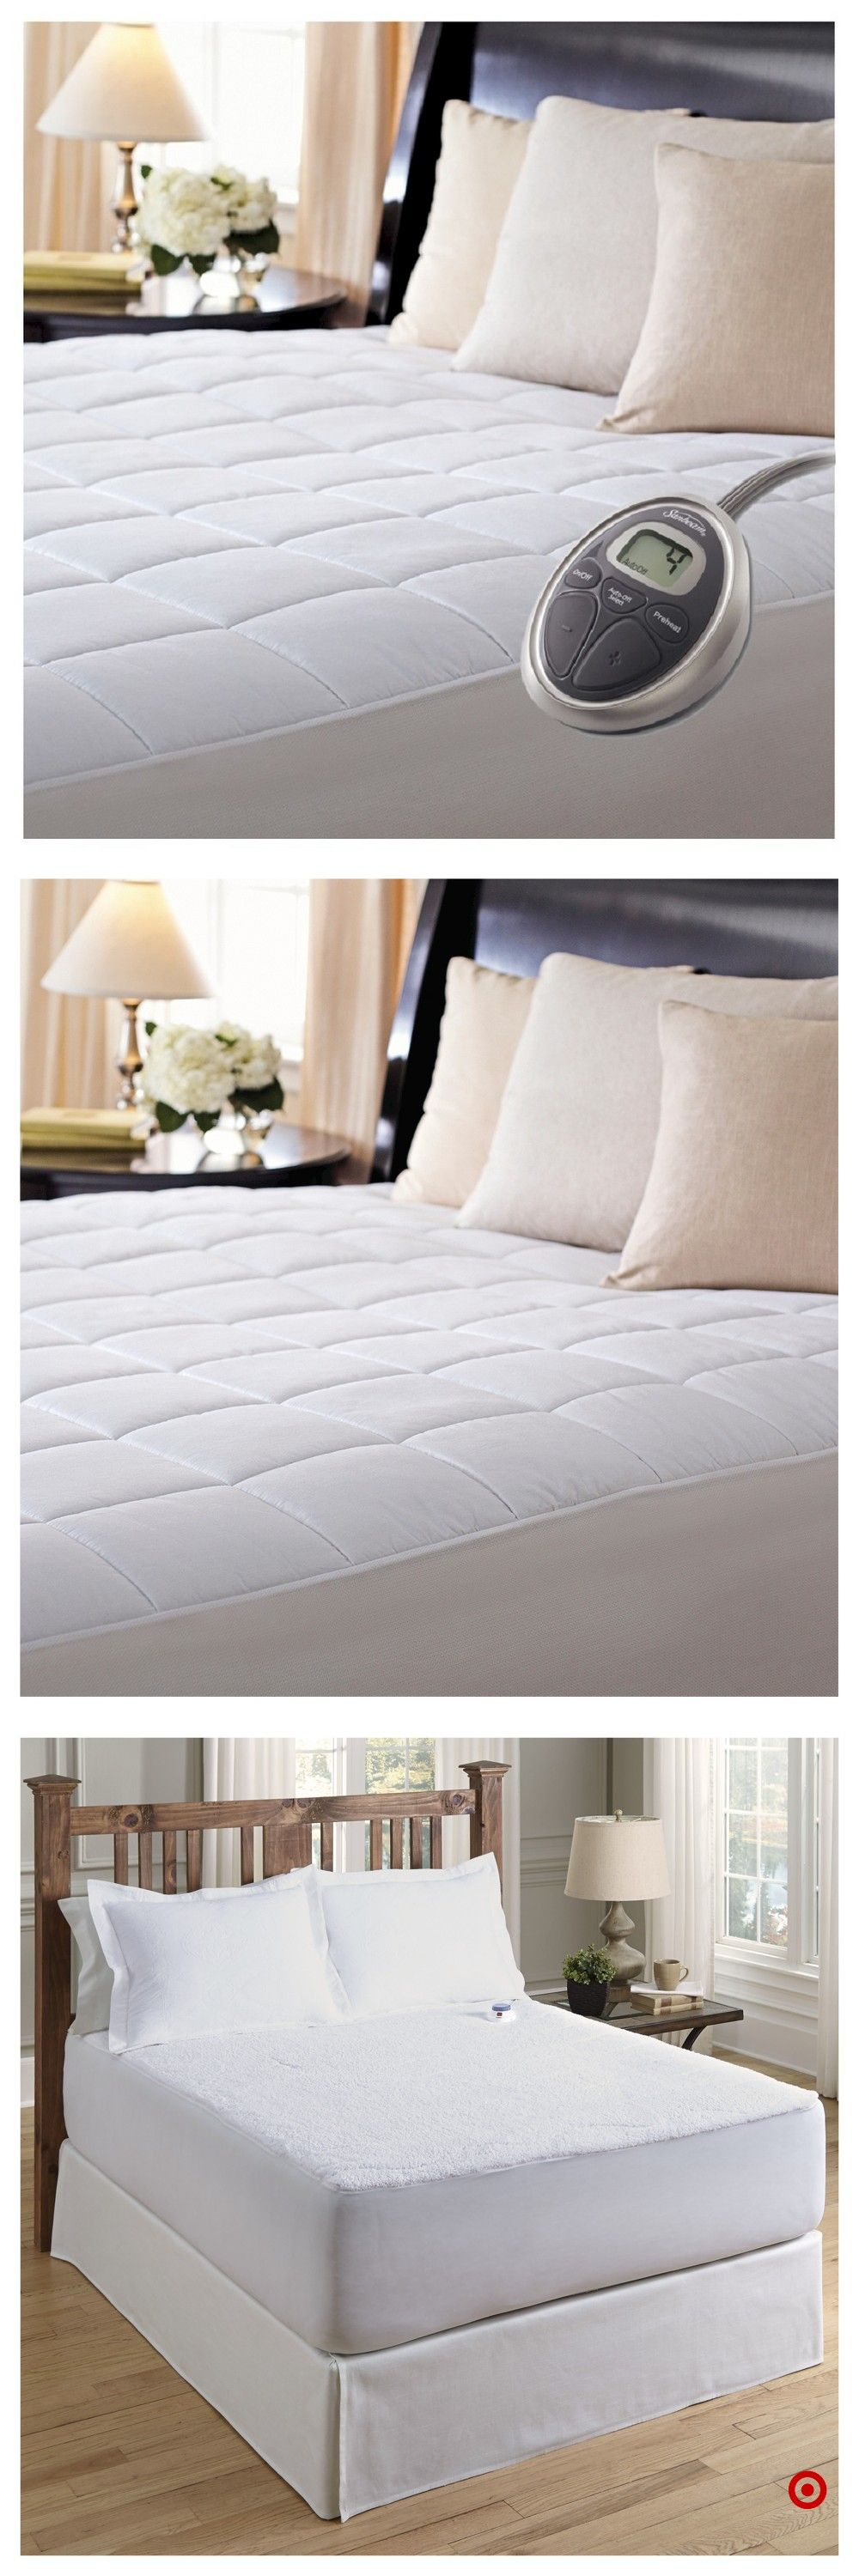 shop target for electric mattress pads you will love at great low